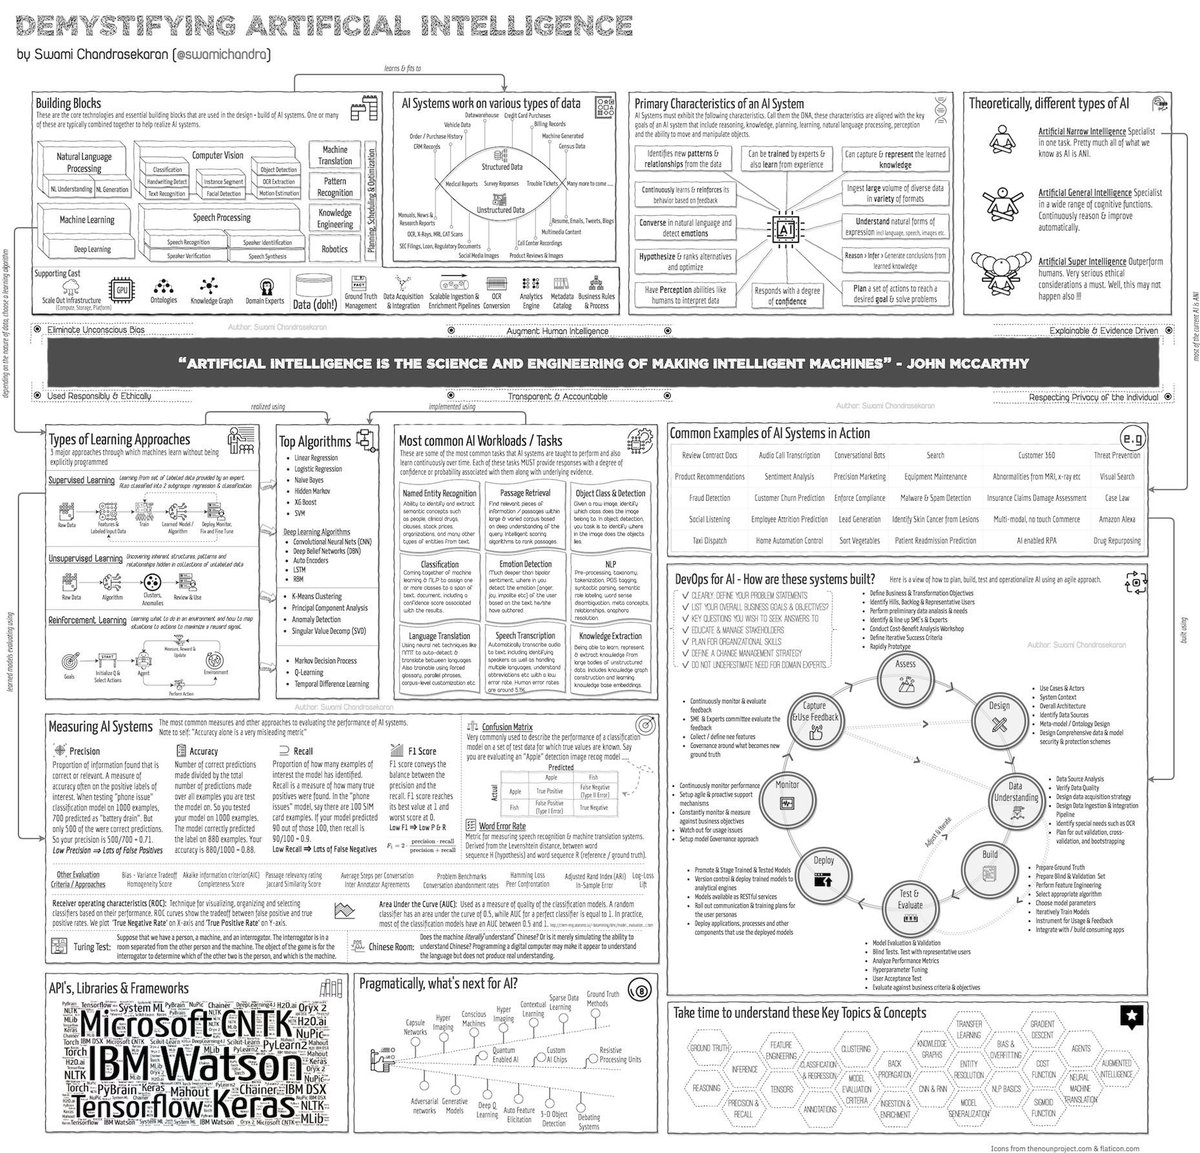 test Twitter Media - Demystifying #ArtificialIntelligence with 10 top #AI applications: https://t.co/KJryZcxTXU ——————— #BigData #DataScience #MachineLearning #DAIFE #DeepLearning #NeuralNetworks #ComputerVision #Algorithms #DataLiteracy V/@KirkDBorne  #infographic source: https://t.co/zIgg0OS7E3 https://t.co/e8MPYcOgkA